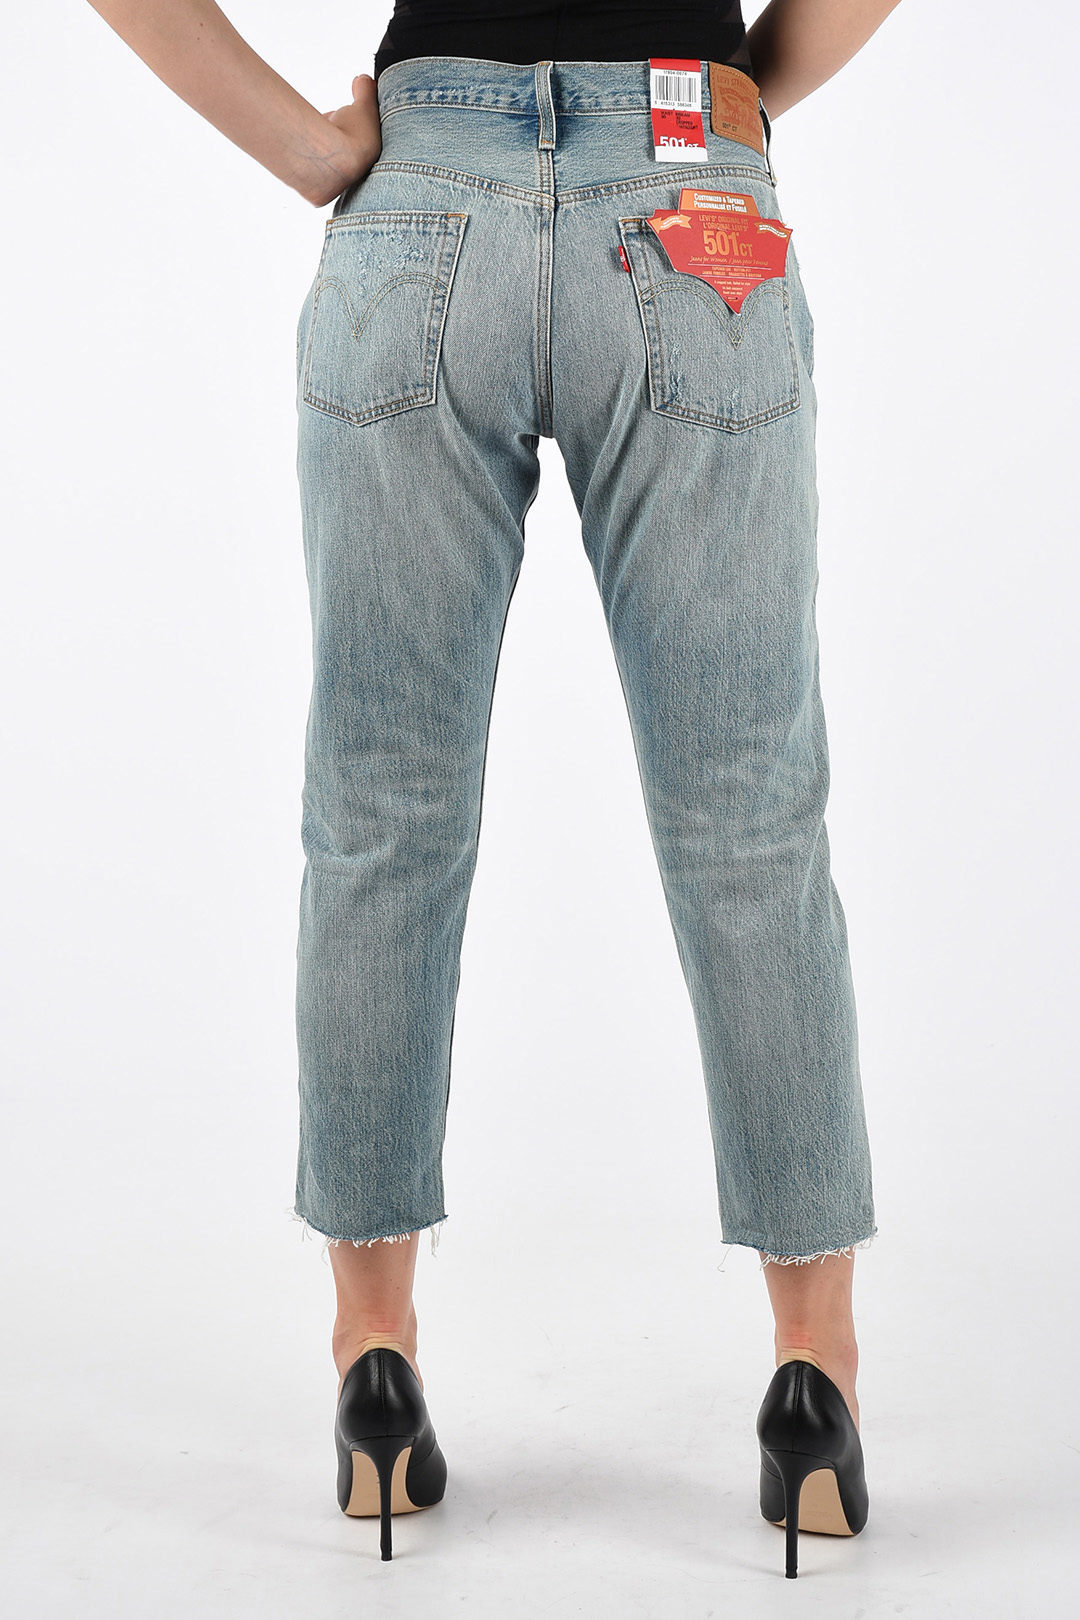 18cm Distressed Denim 501CT L32 Jeans